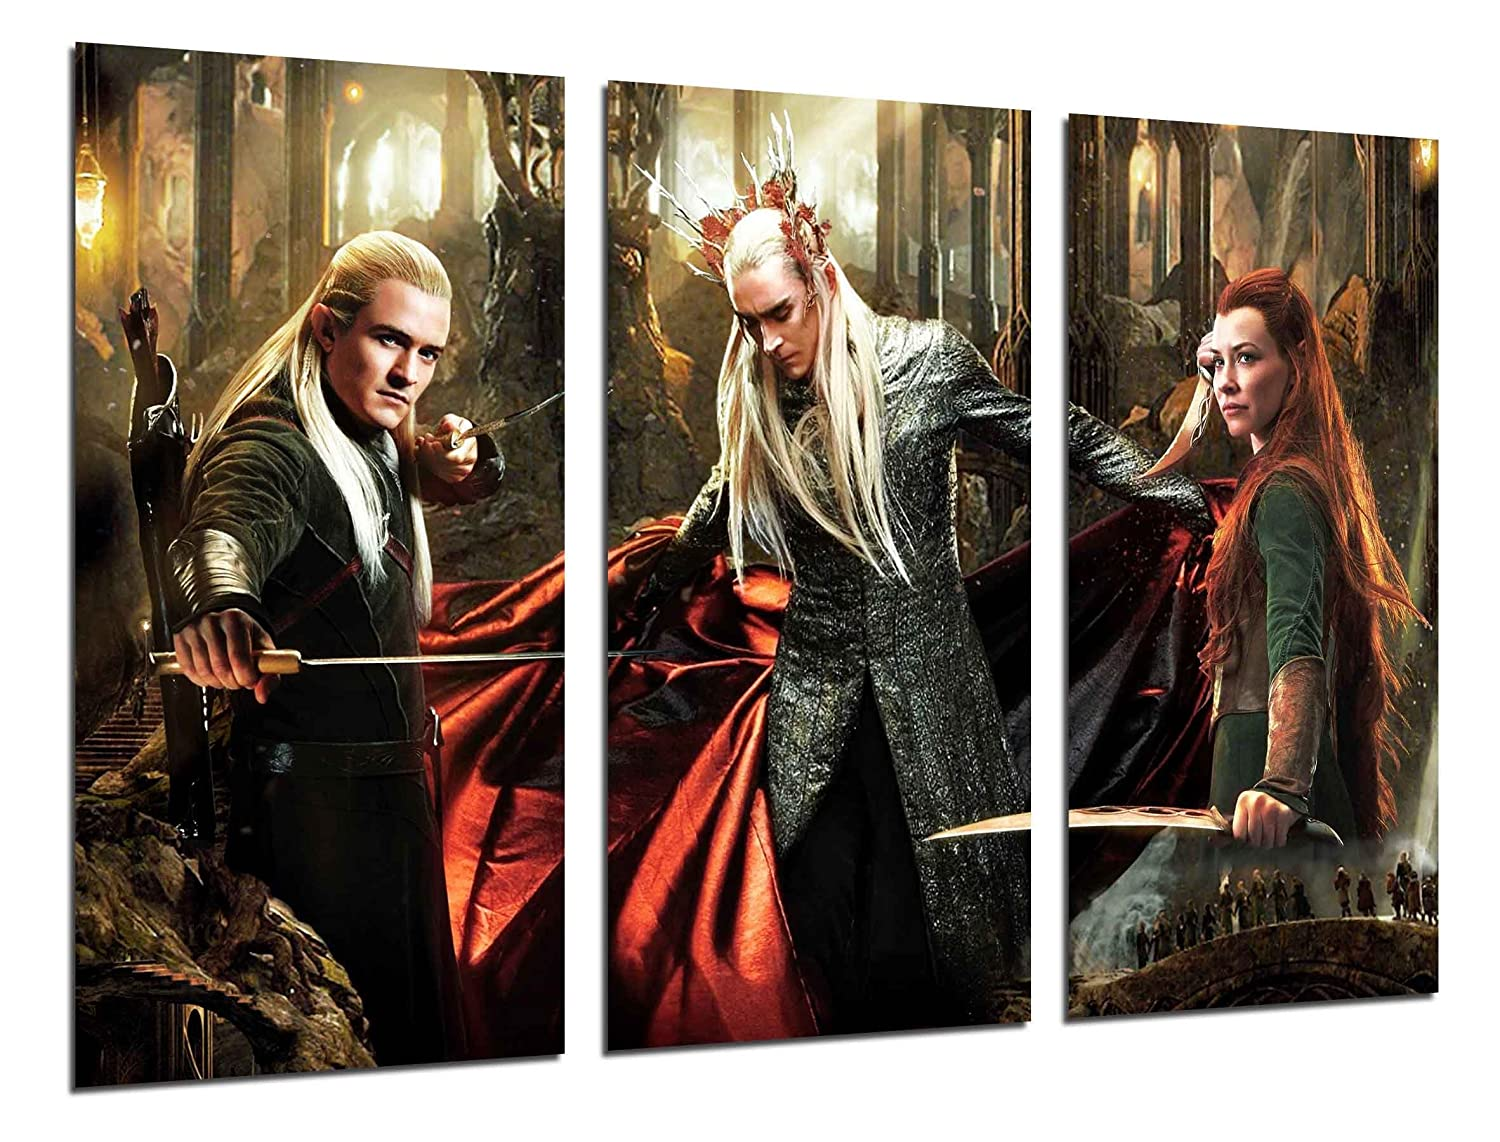 Cuadros Camara MULTI Wood Printings Art Print Box Framed Picture Wall Hanging - The Lord of the Rings, Cinema, Films, (Total Size: 38,2